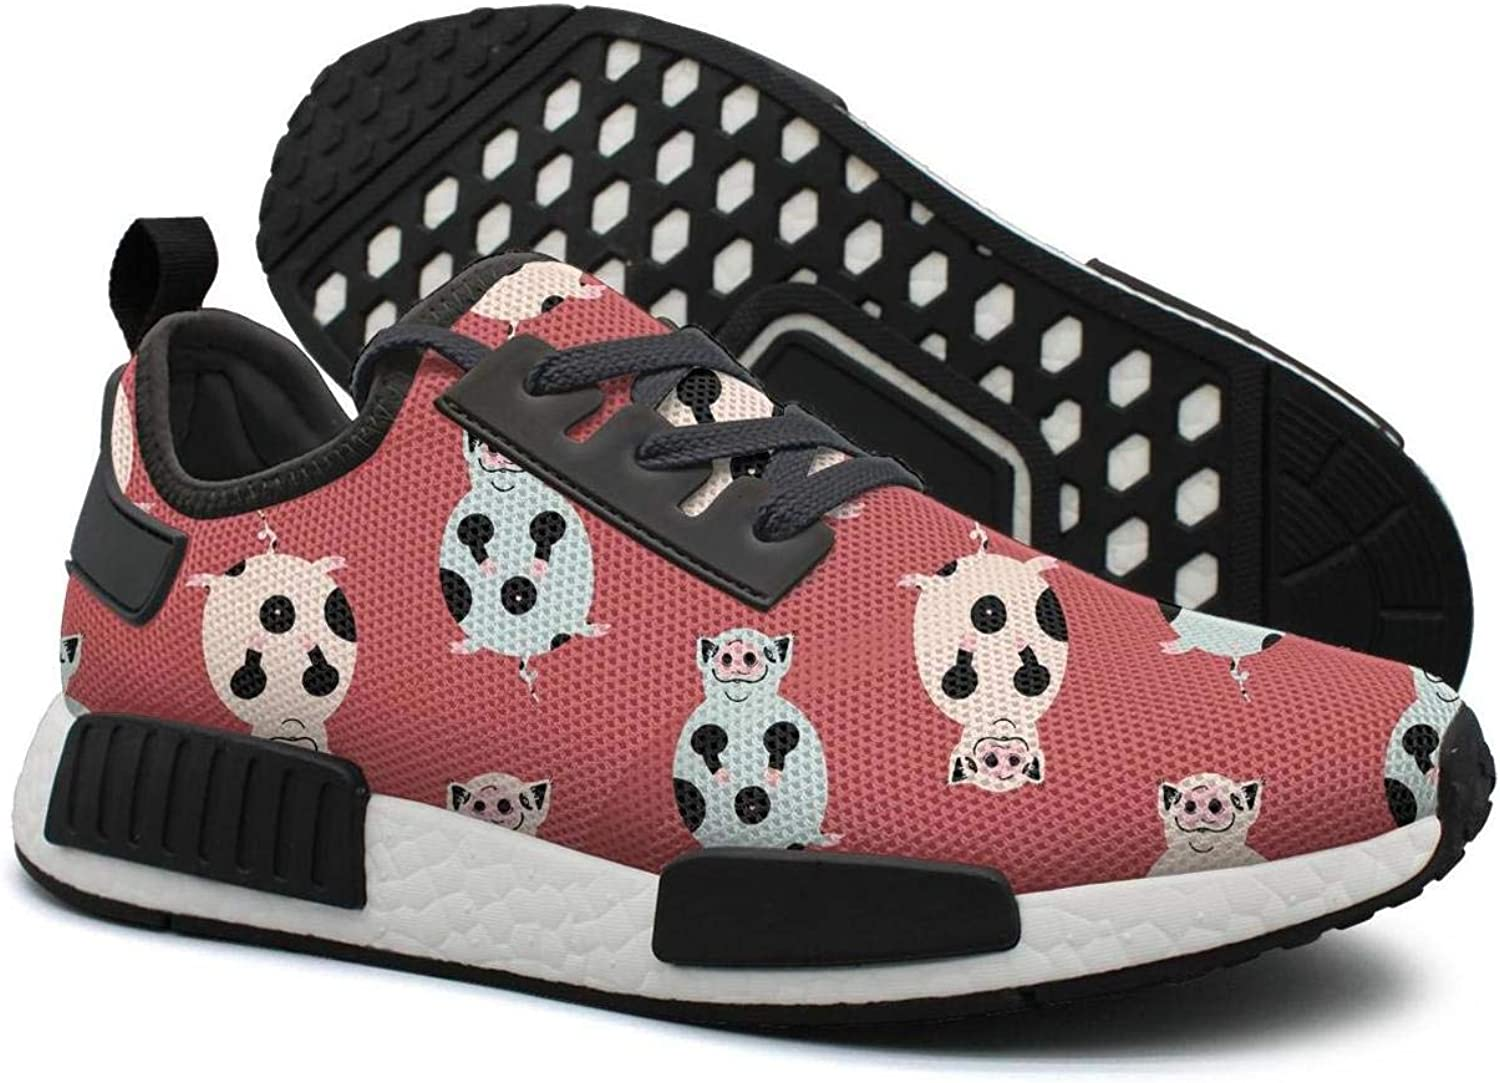 Pduiqo Red Fat Cute Spotted Pig Women's Navy Lightweight Tennis Sneakers Gym Outdoor Athletic shoes